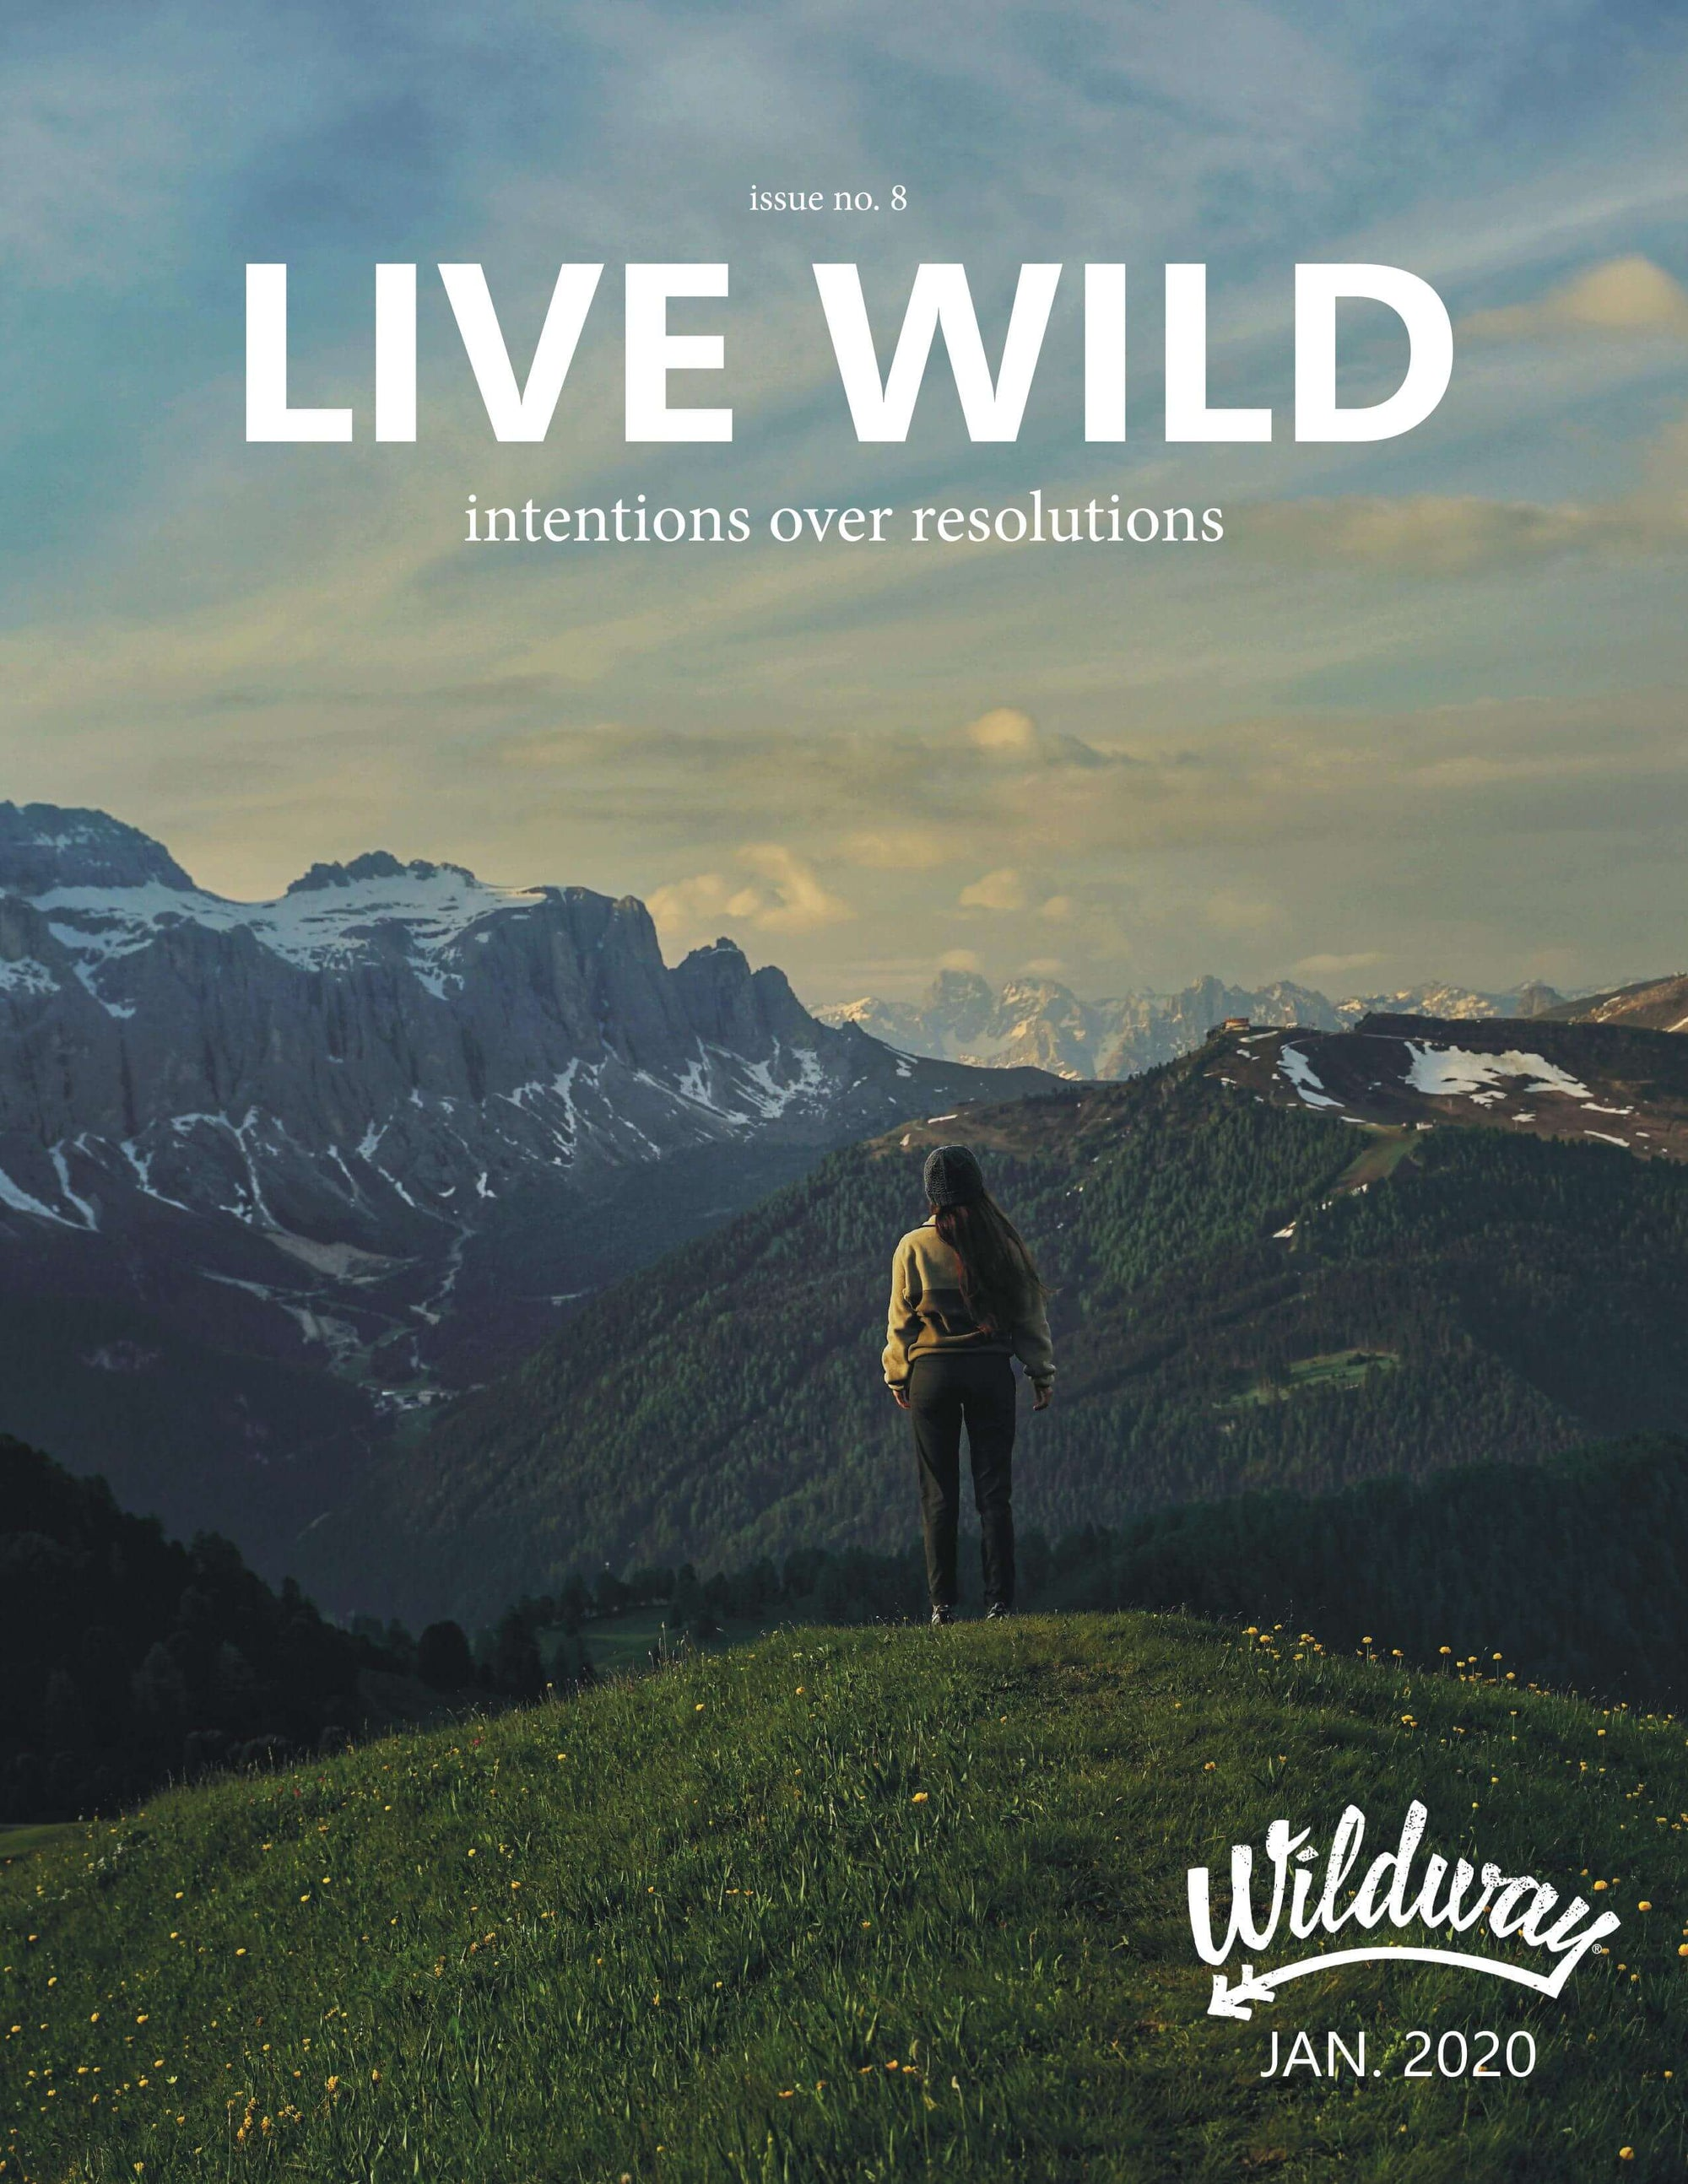 live wild magazine winter 2020 issue